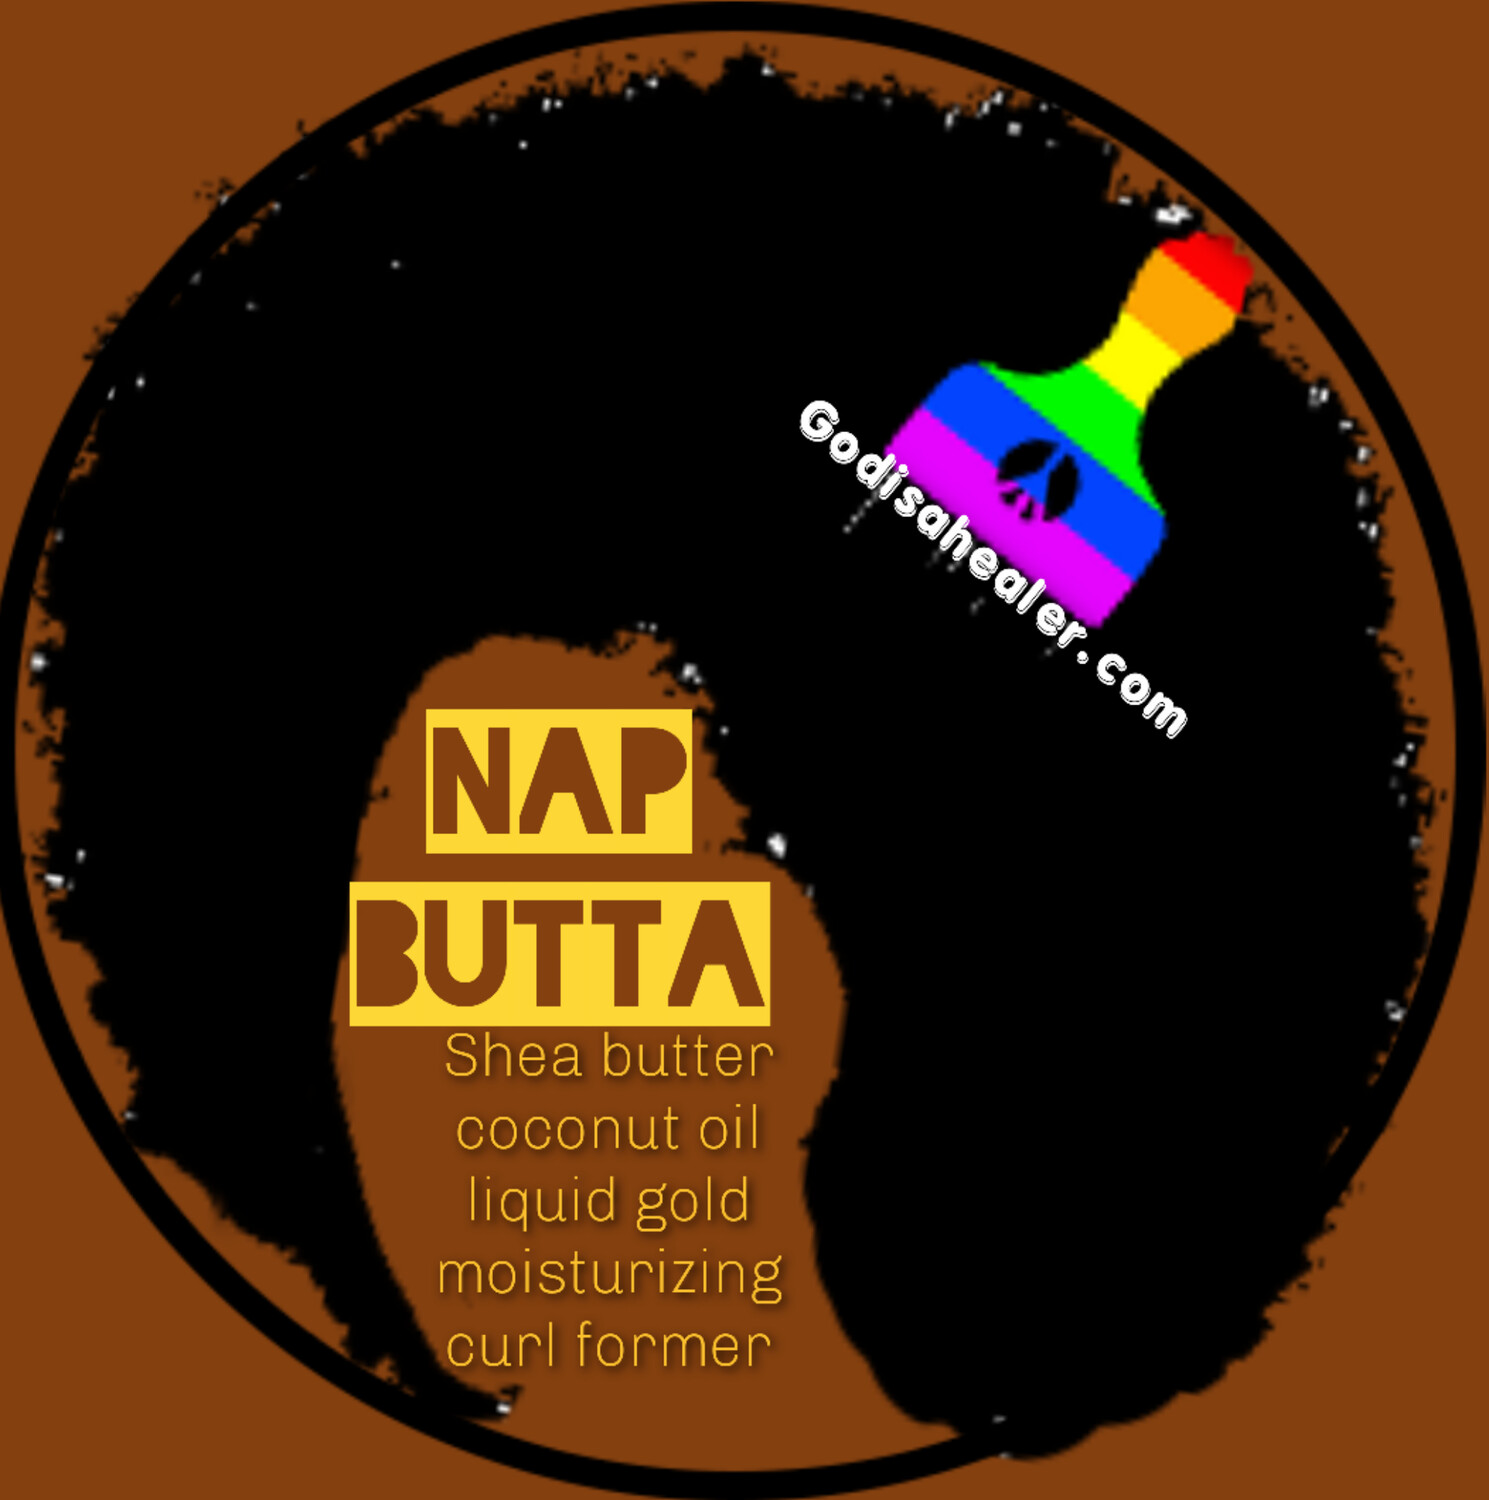 Hair Nap Butta 8oz Nap Butta is a great moisturizing curl former and enhancer. Loaded with shea butter, flax seed oil, rice bran oil, and coconut oil, to keep your curls soft and shiny.